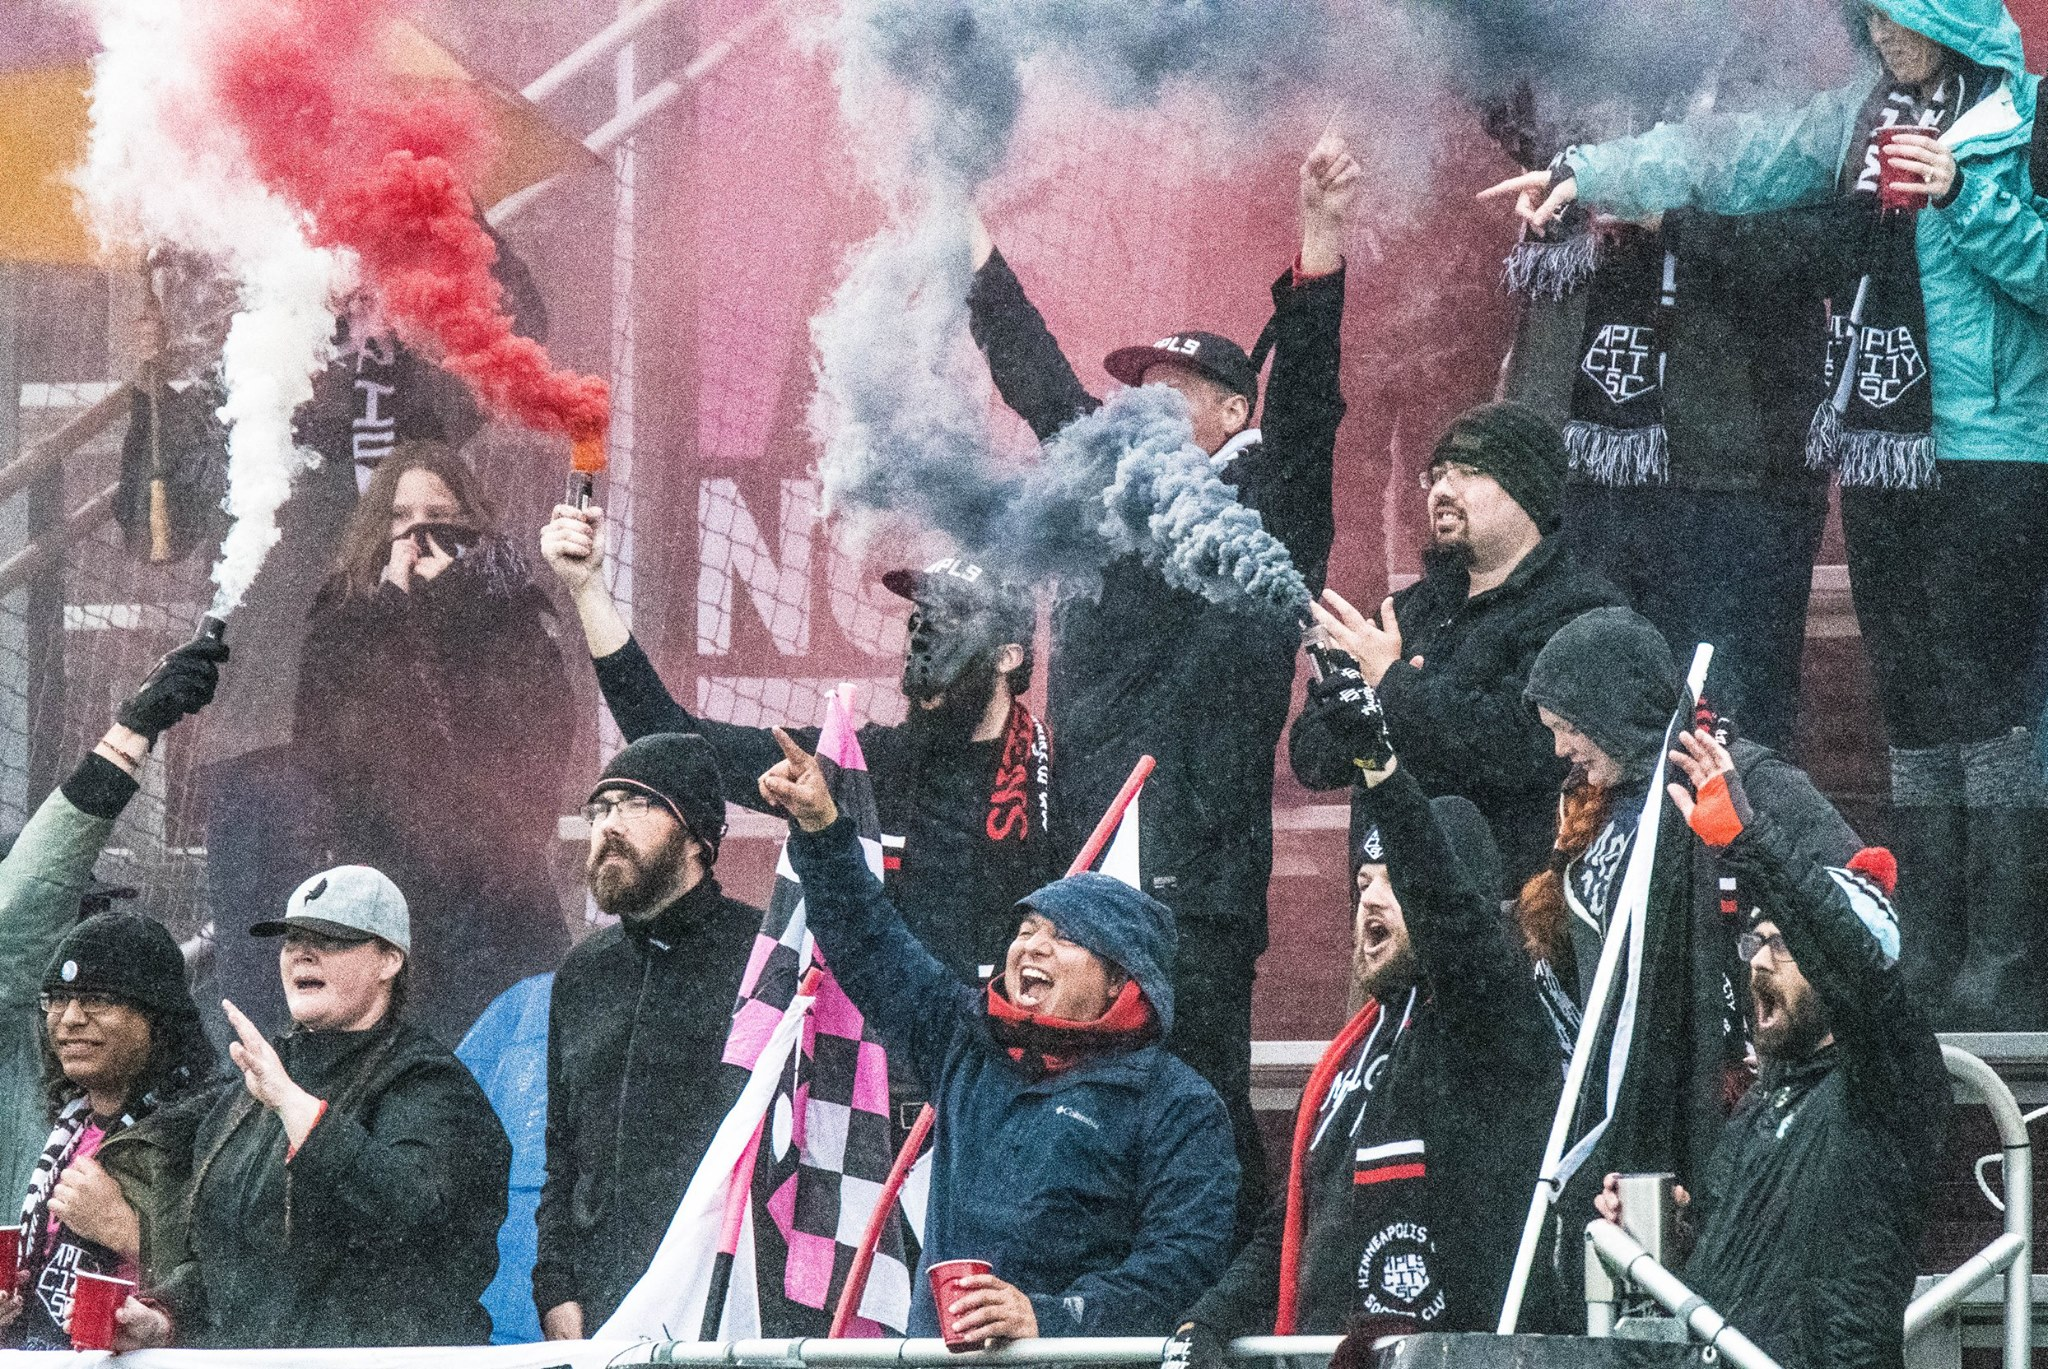 Minneapolis City Soccer Club fans celebrating on a cold evening // Photo courtesy MPLS City Soccer Club Facebook